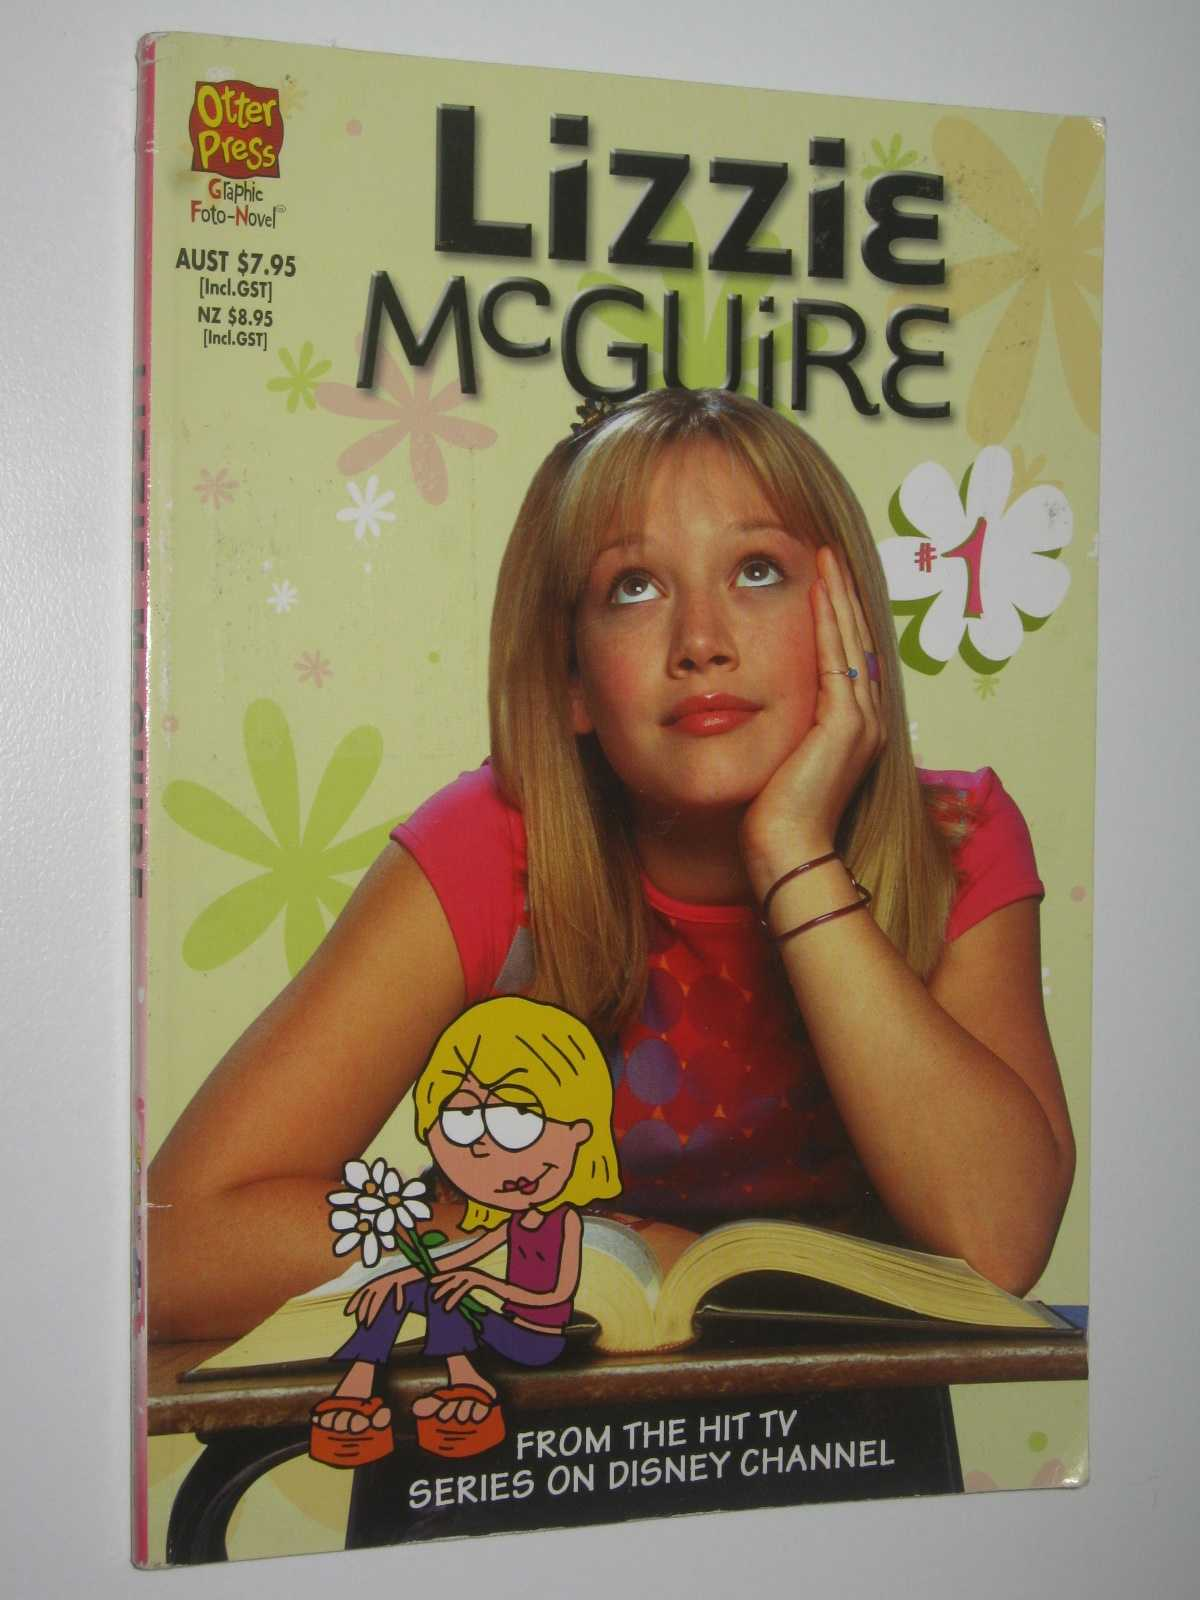 Lizzie McGuire Foto-Novel Volume 1, Author Not Stated